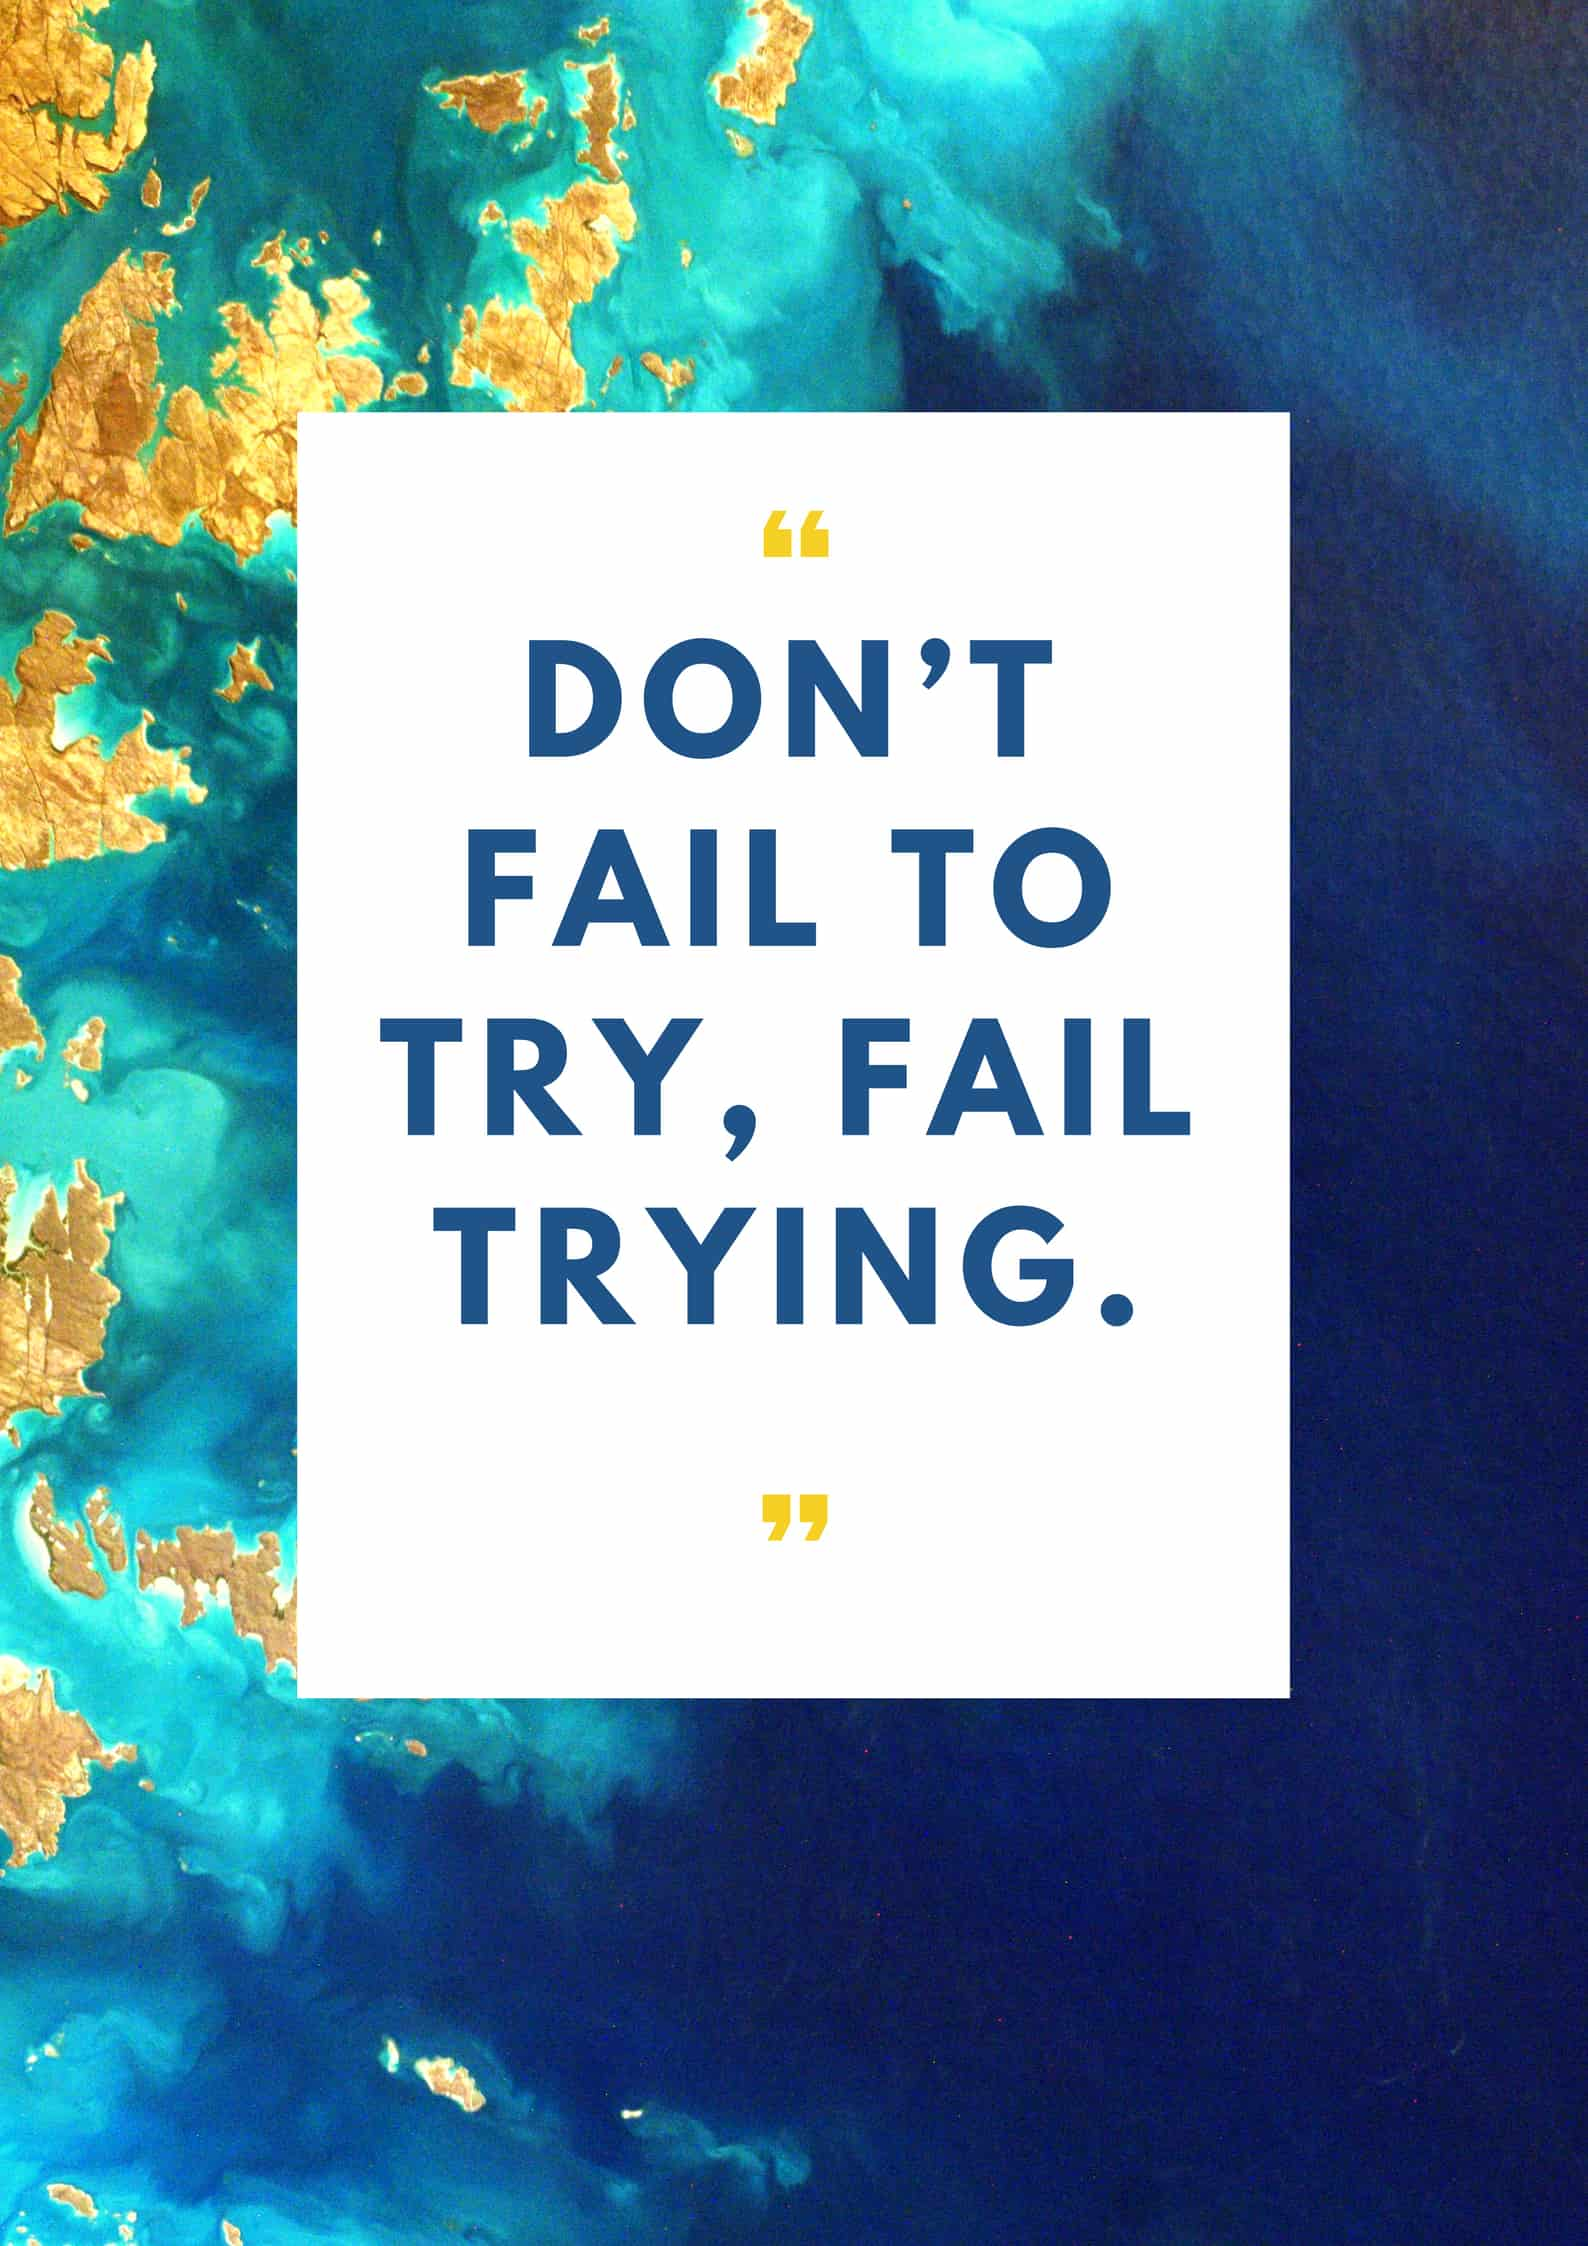 Don't fail to try, fail trying.